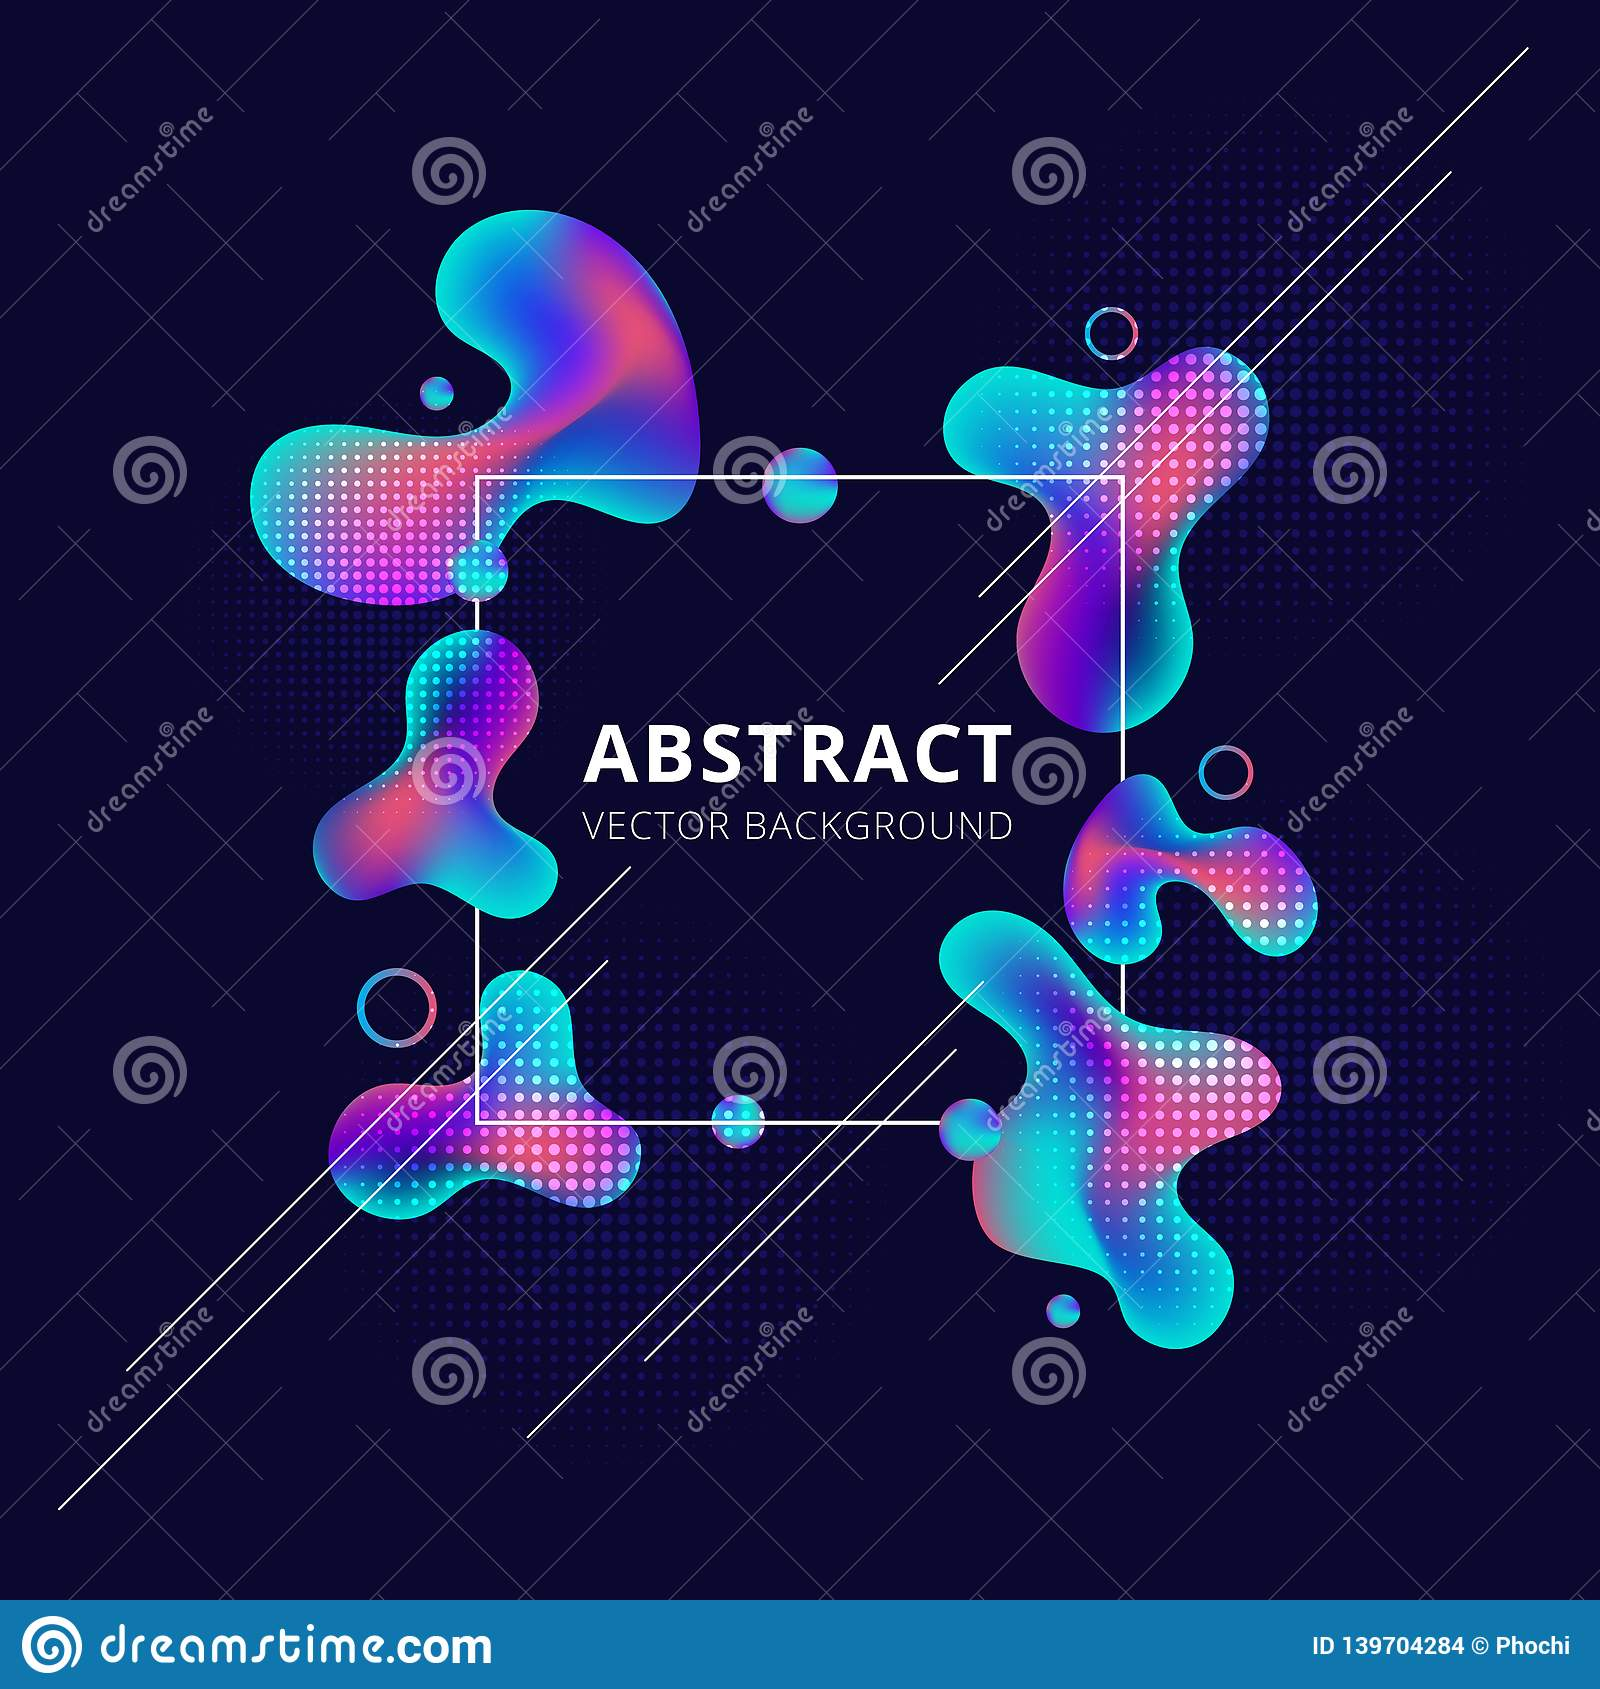 Abstract Trendy Fluid Shape Bright Gradient Colors On Dark